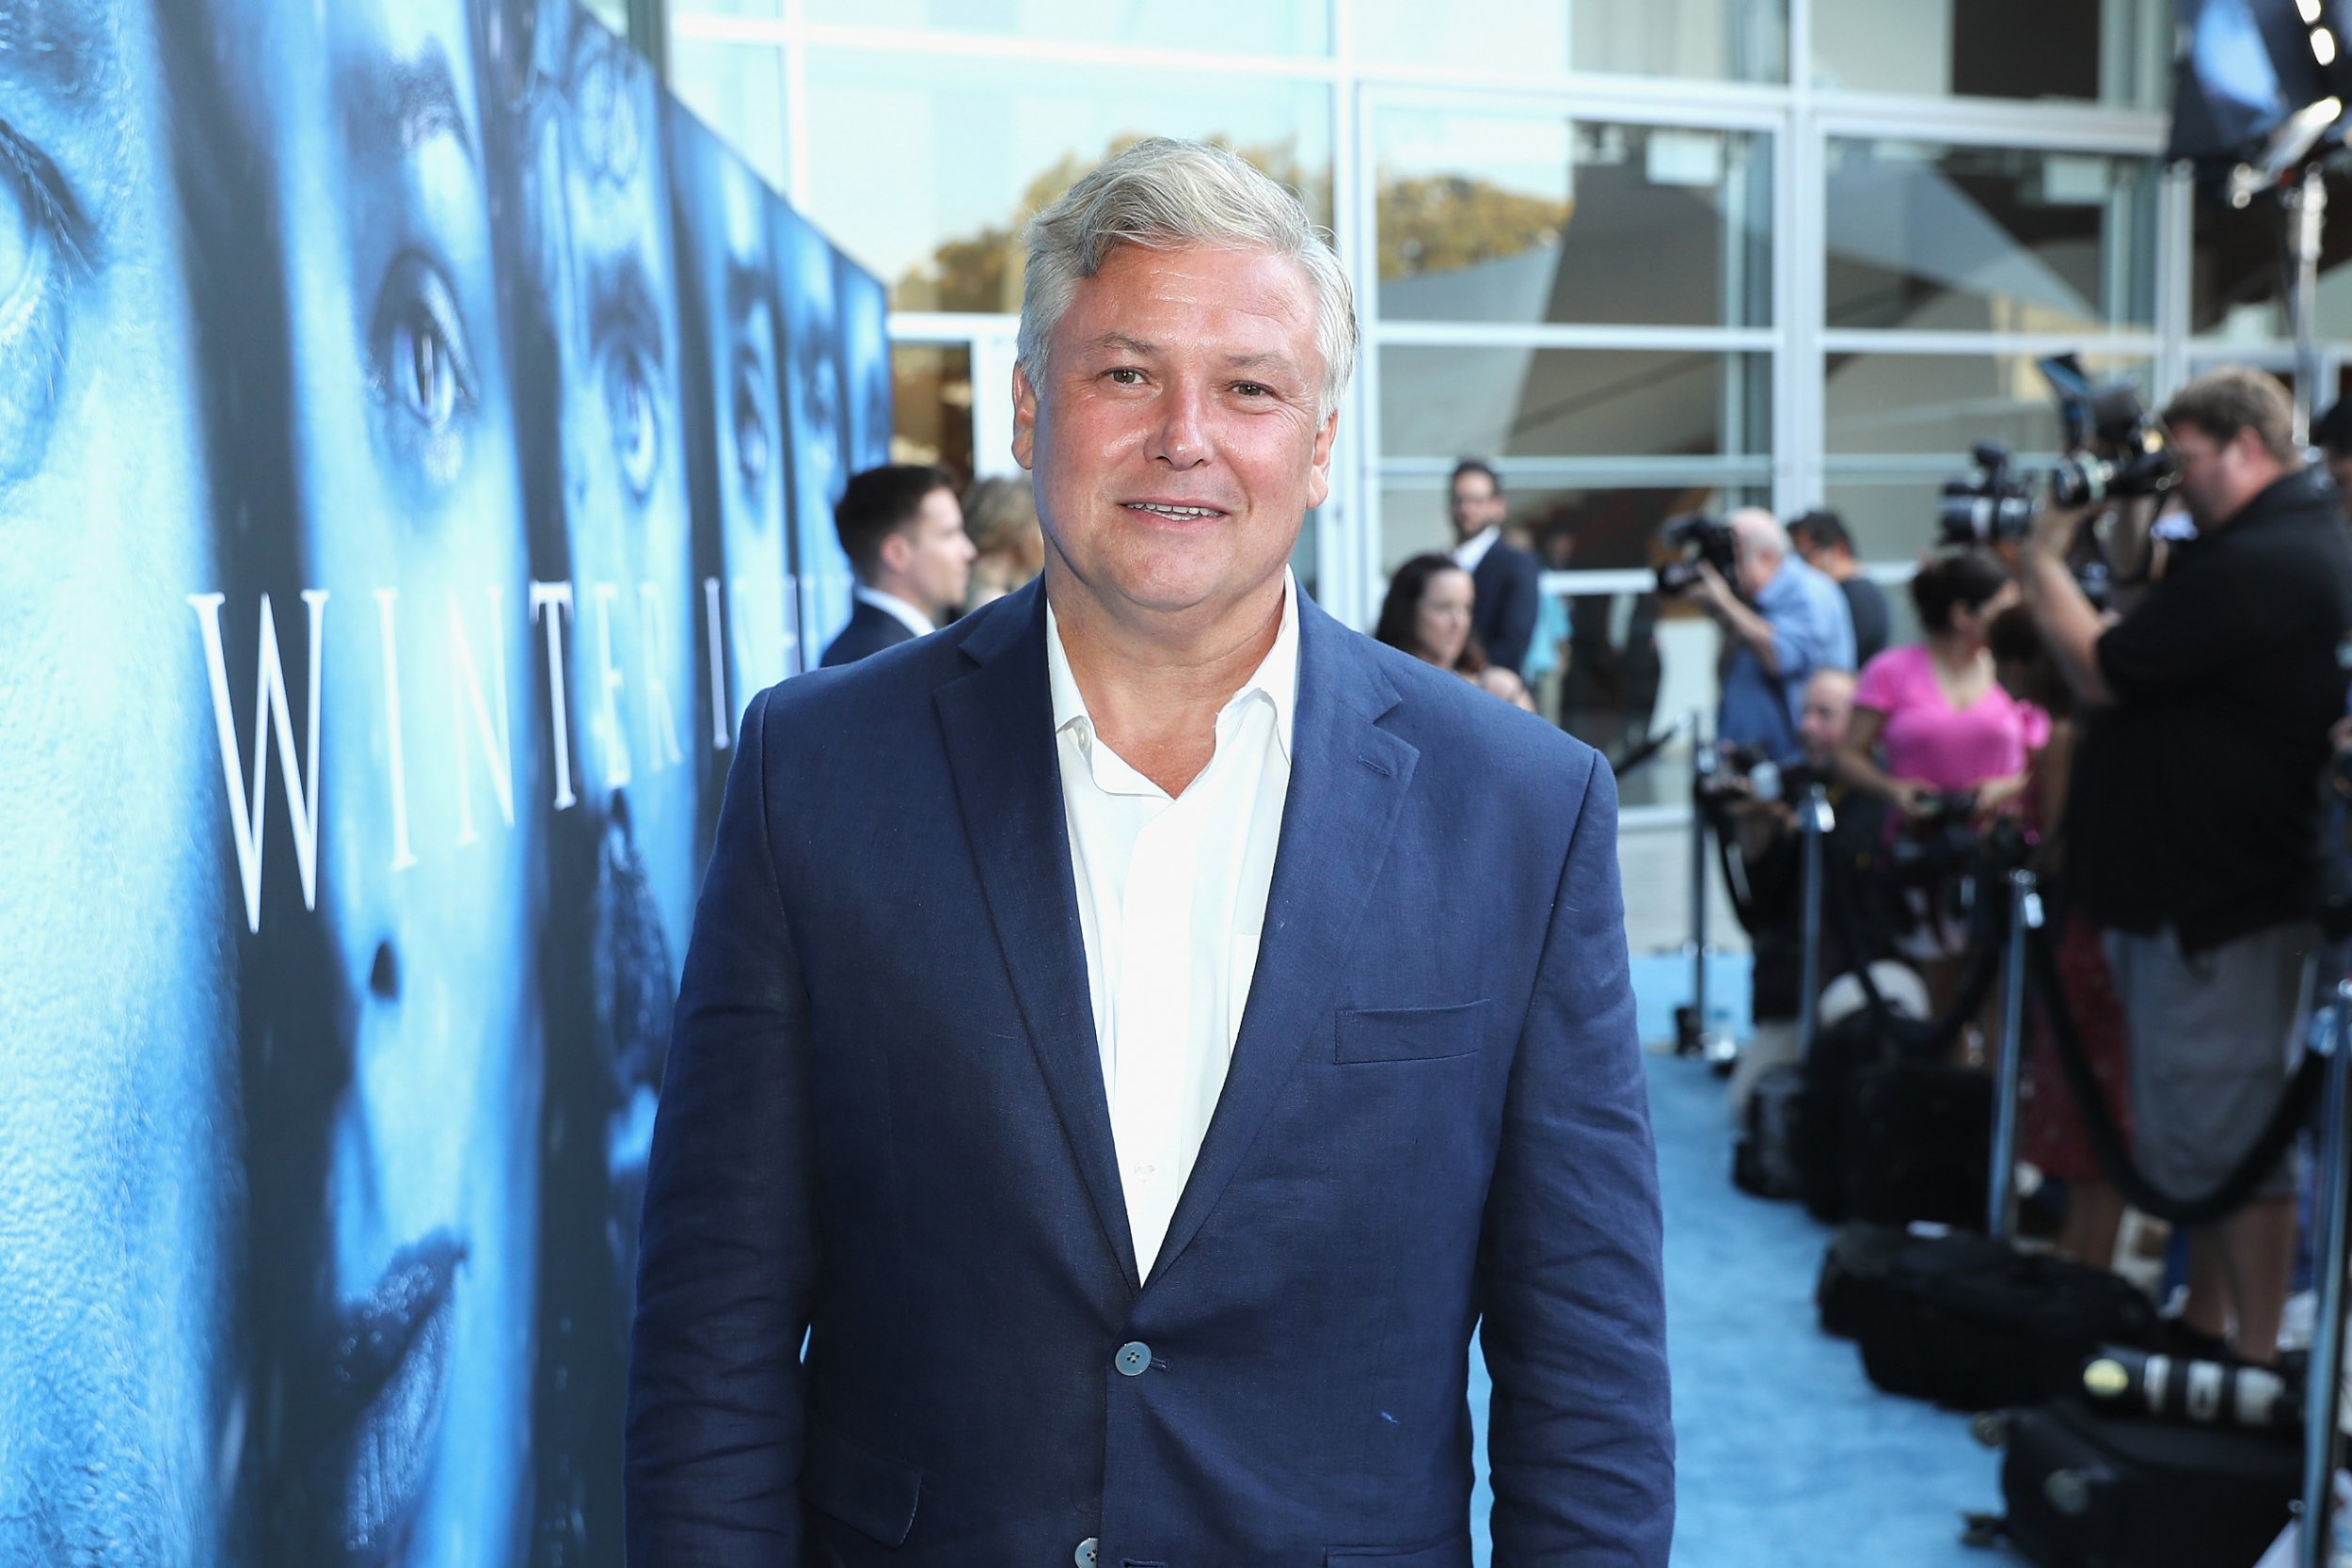 Conleth Hill - Varys in Game of Thrones